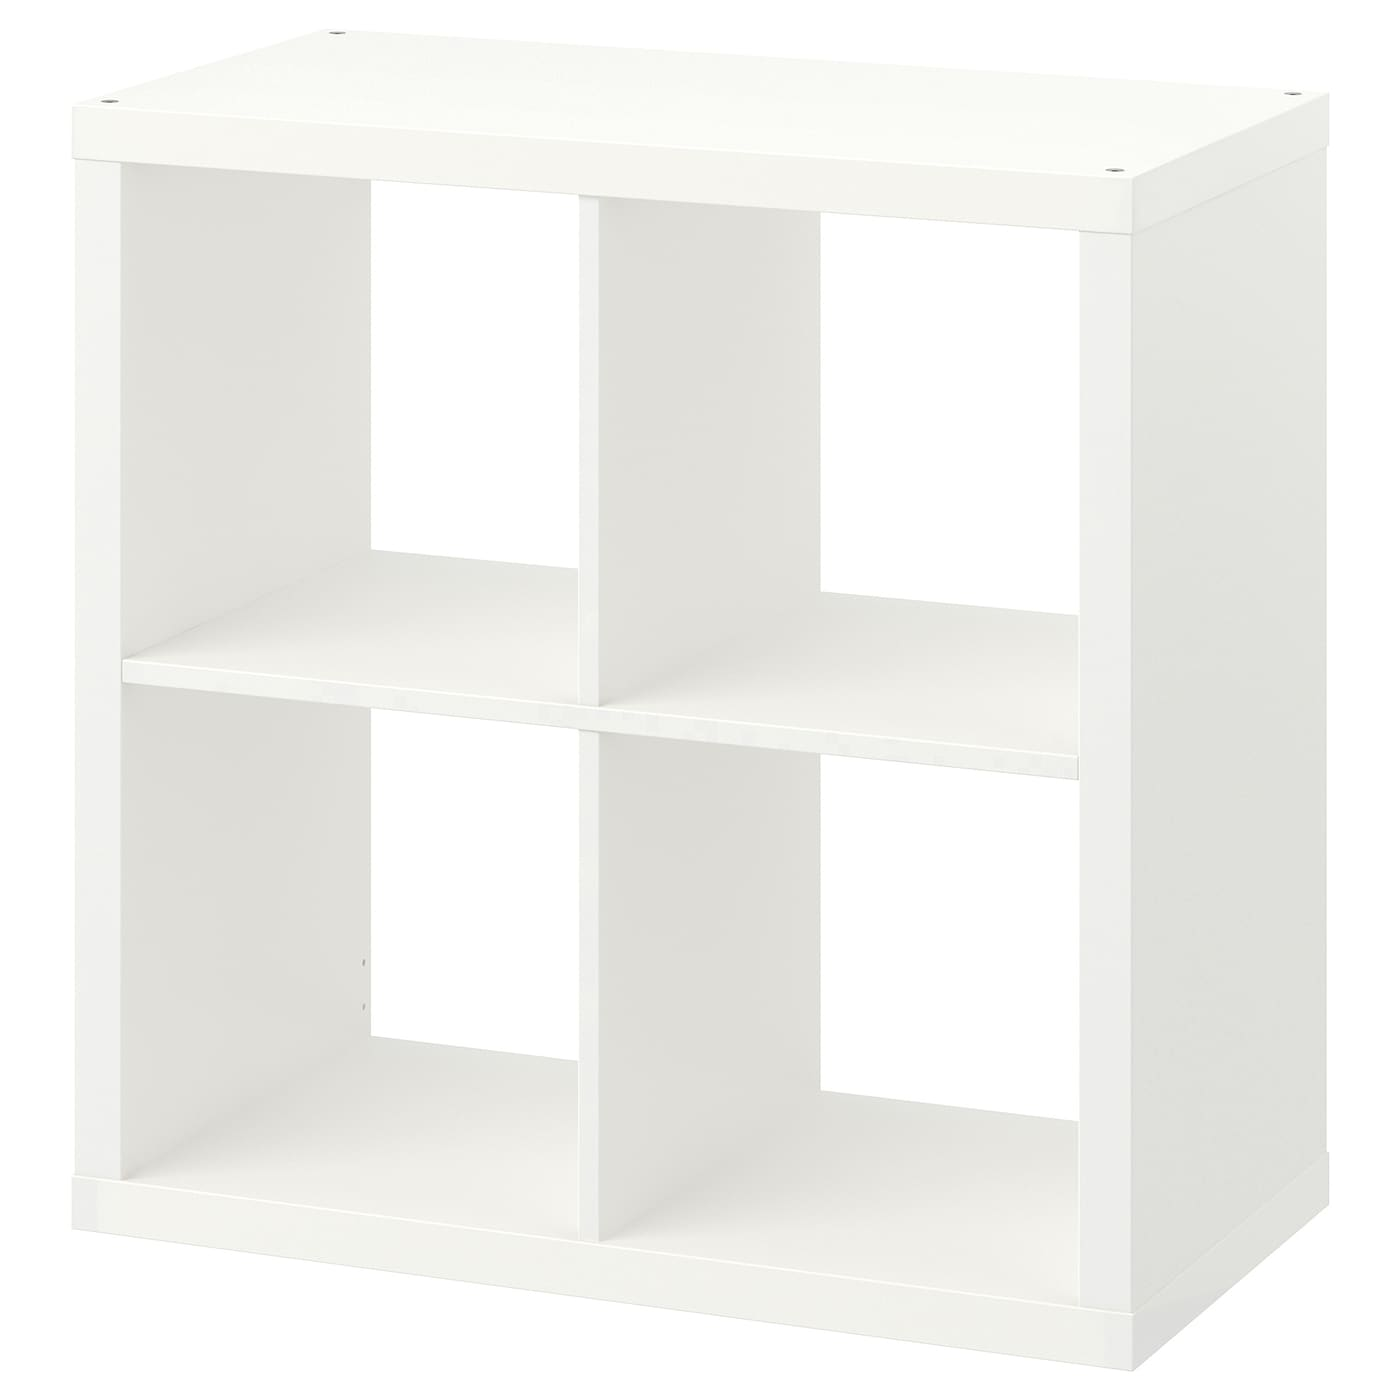 Cube Regal Ikea